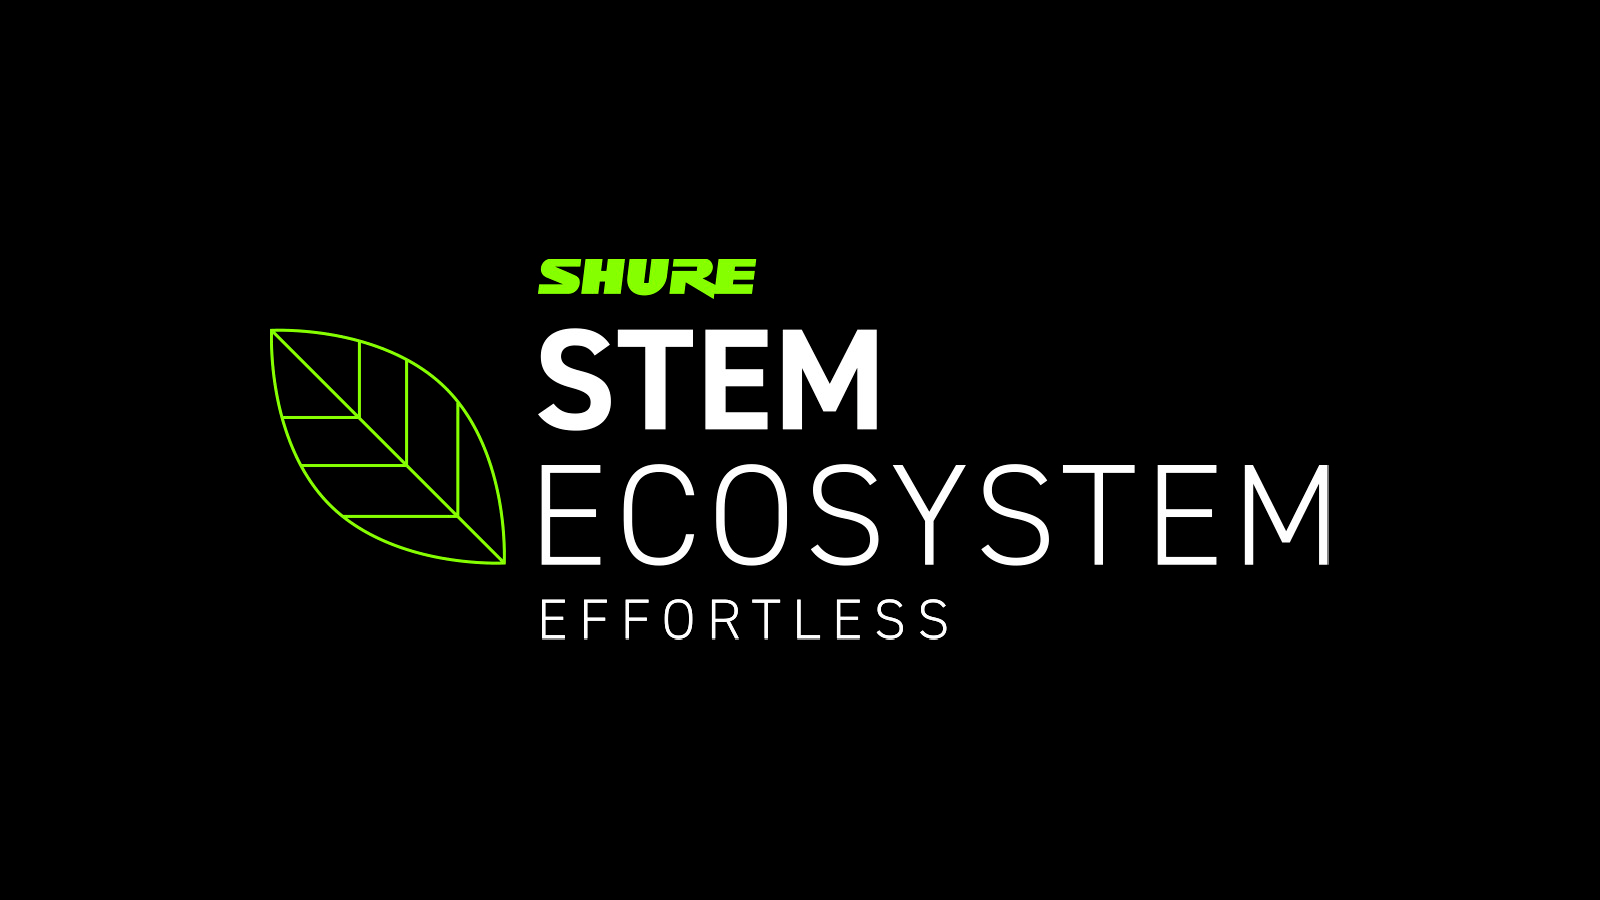 Shure Now Offers Expanded AV Conferencing Solutions with Stem Ecosystem™ and Microflex Ecosystem®